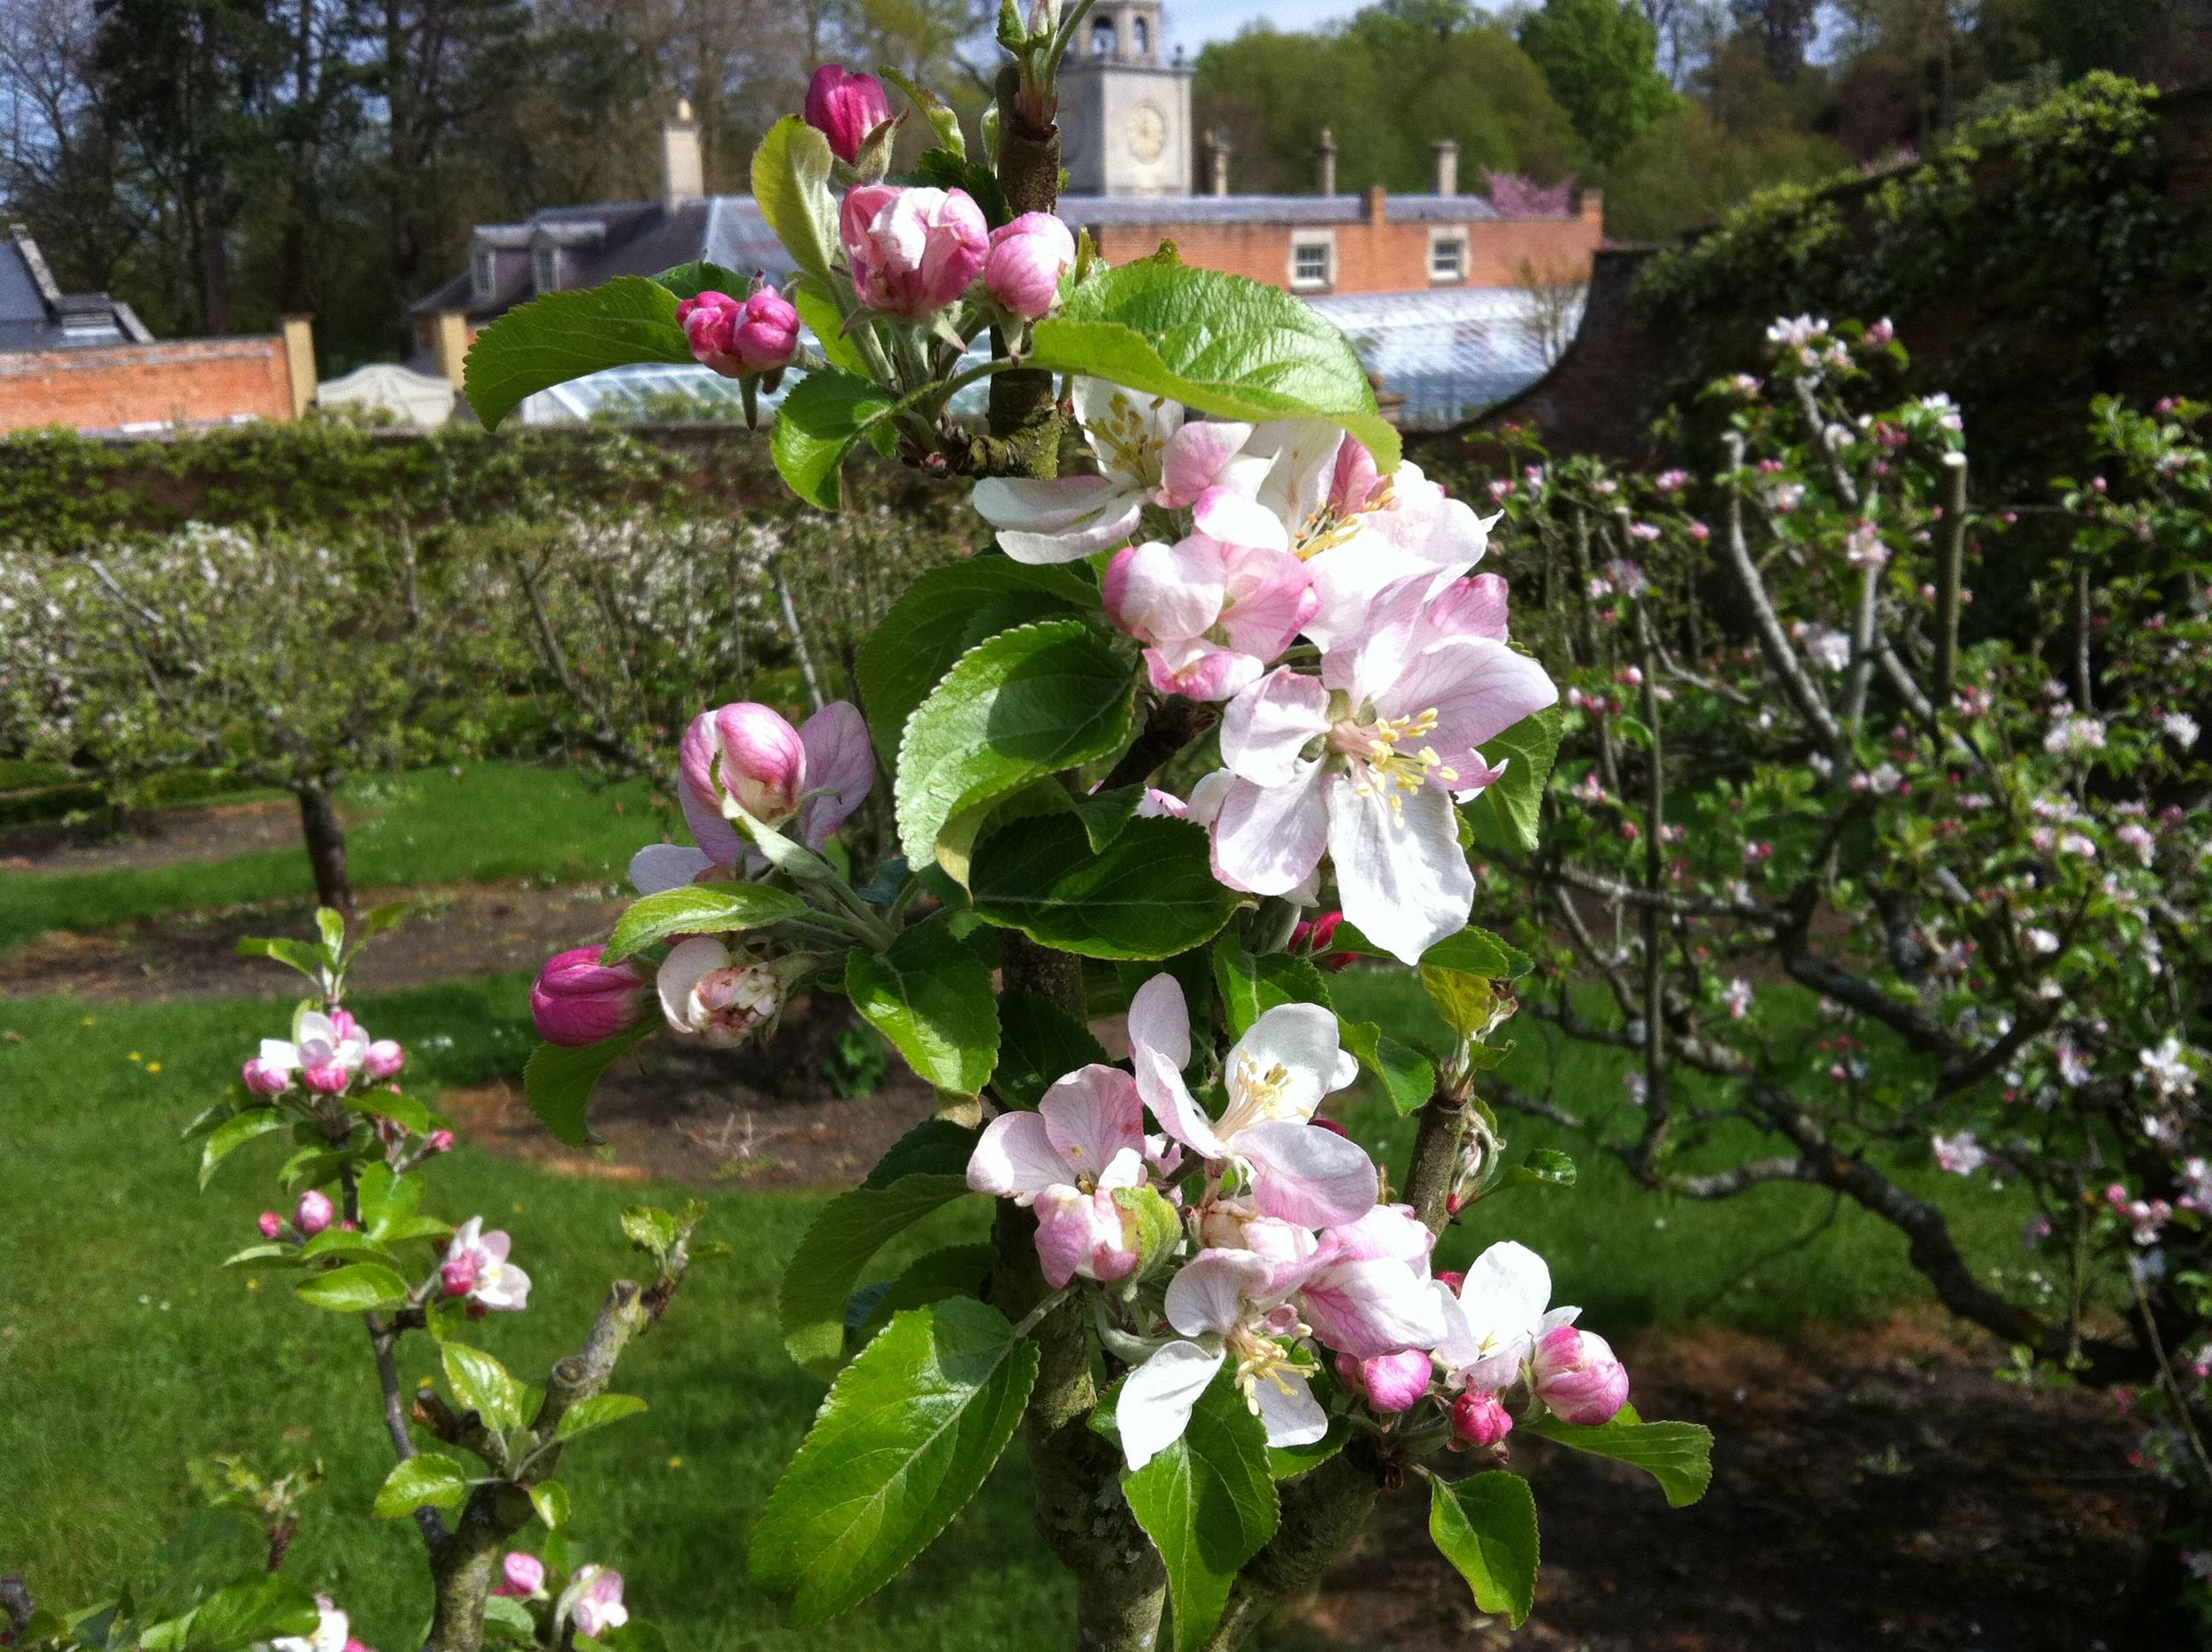 Apple tree covered in blossom following specialised pruning as requested by client. These apple trees were summer pruned as if they were espalier fruit trees grown against a wall.